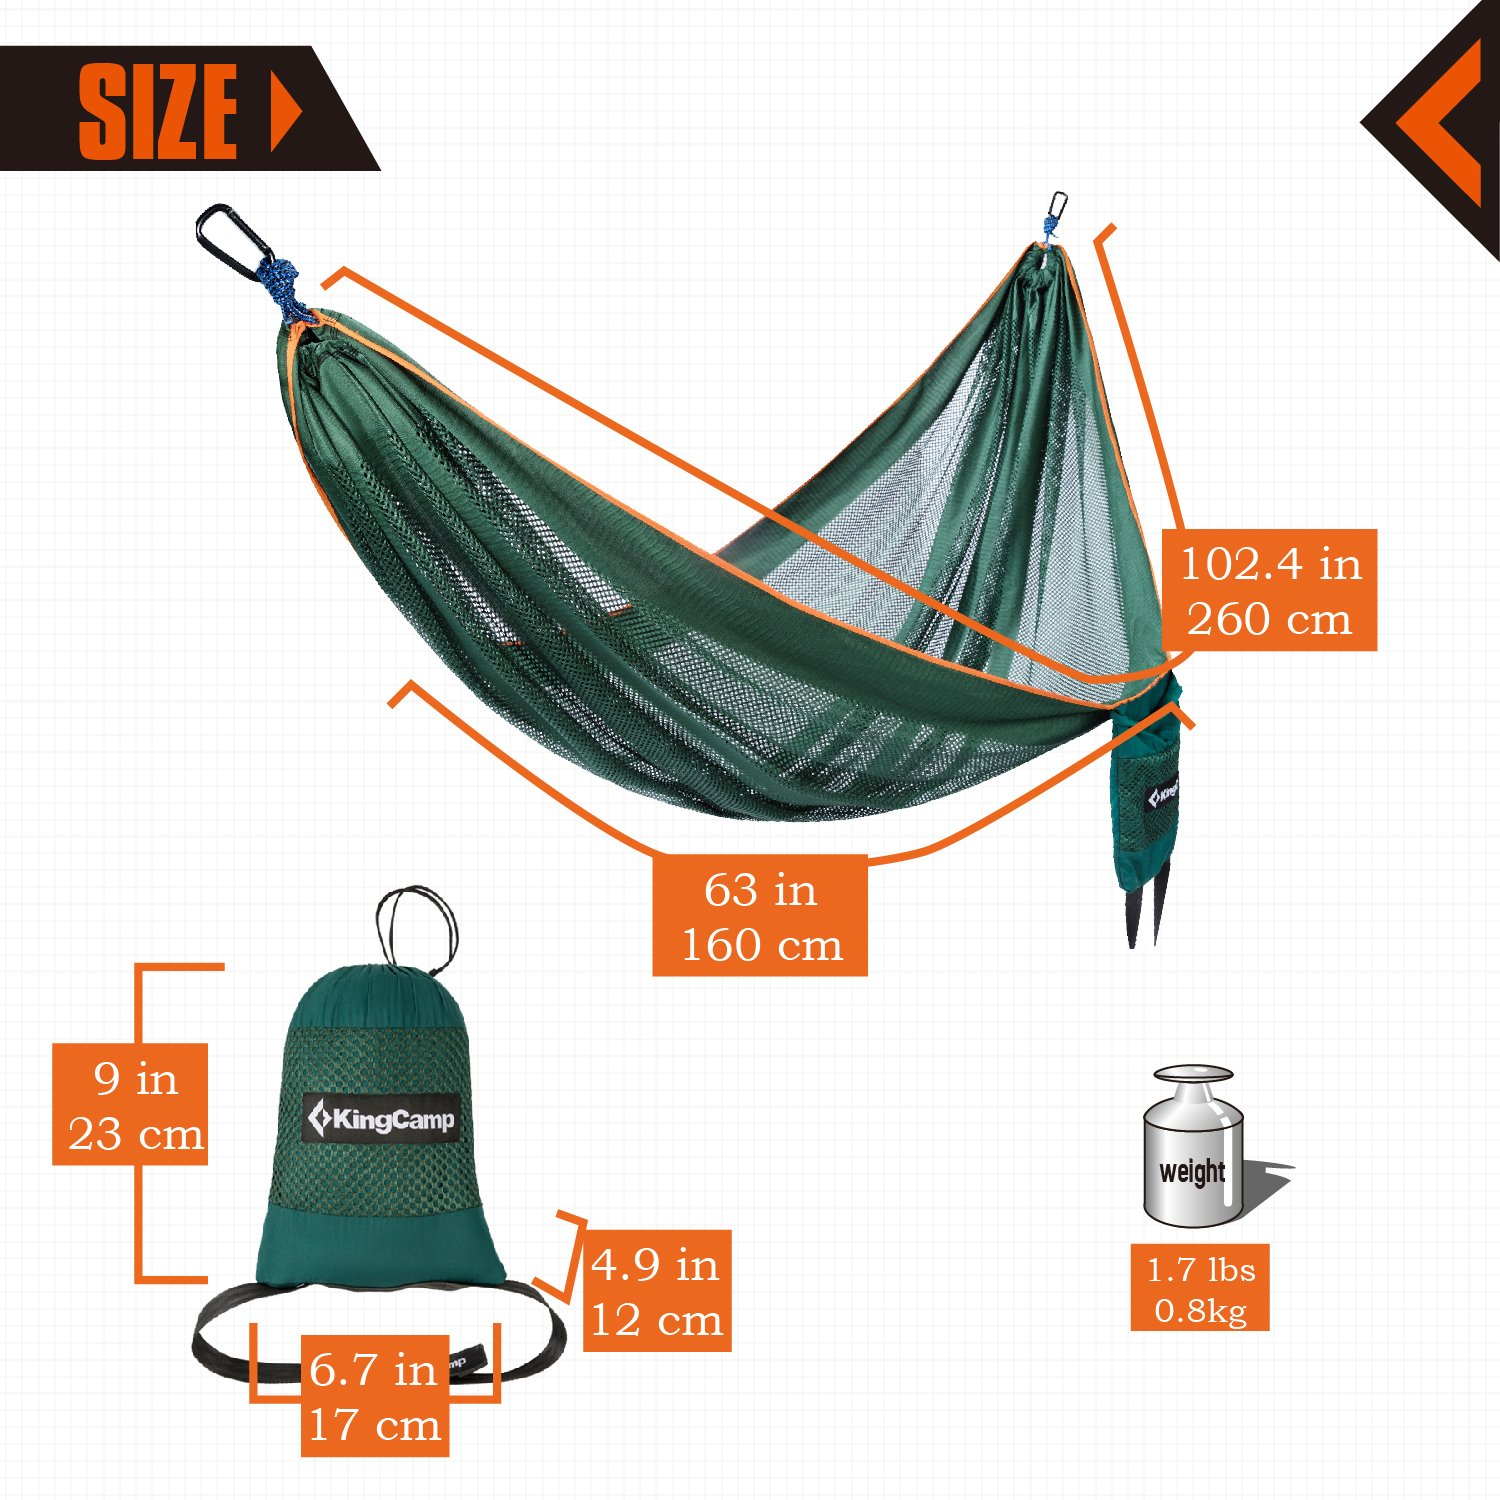 2 Tree Straps Included KingCamp Camping Hammock Breathable Lightweight Portable Cool Mesh Hammocks for Outdoor Patio,Tree Beach and Hiking